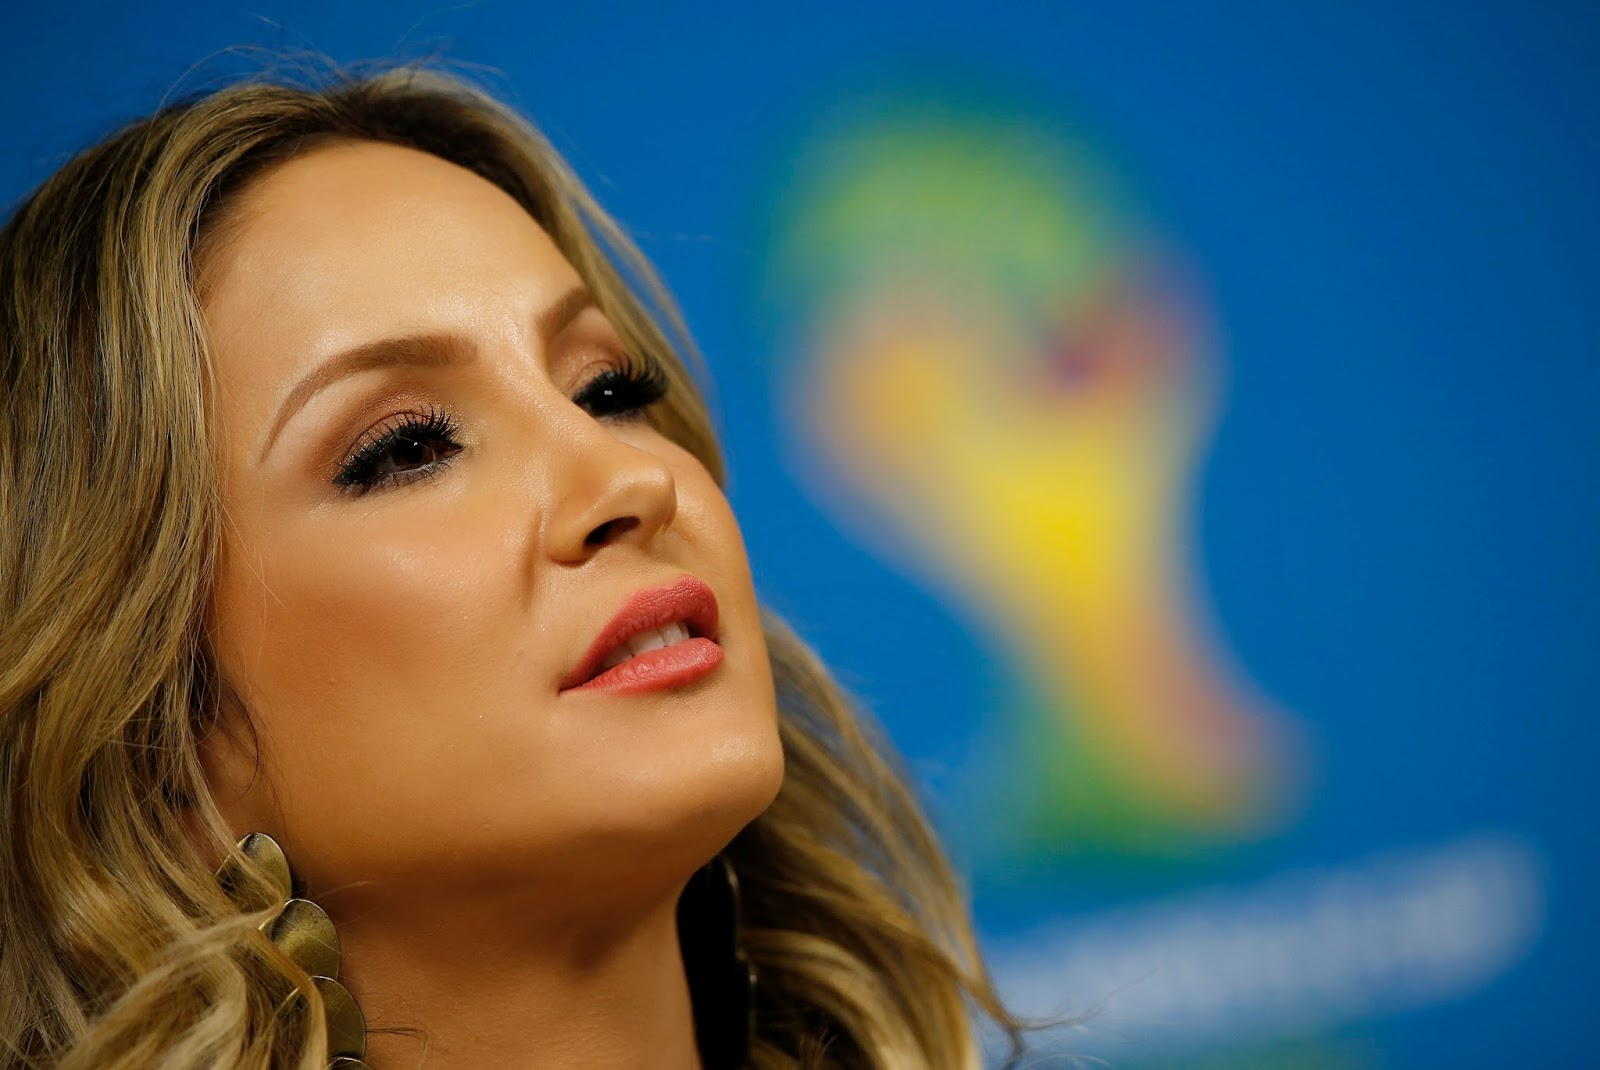 Brazil, Claudia Leitte, Claudia Leitte Photo, FIFA Opening Ceremony, FIFA World Cup, FIFA World Cup 2014, Football, Pitbull, Pitbull and Claudia Leitte, Pitbull Photo, Sao Paulo, Showbiz, Singer, Soccer, Sports,